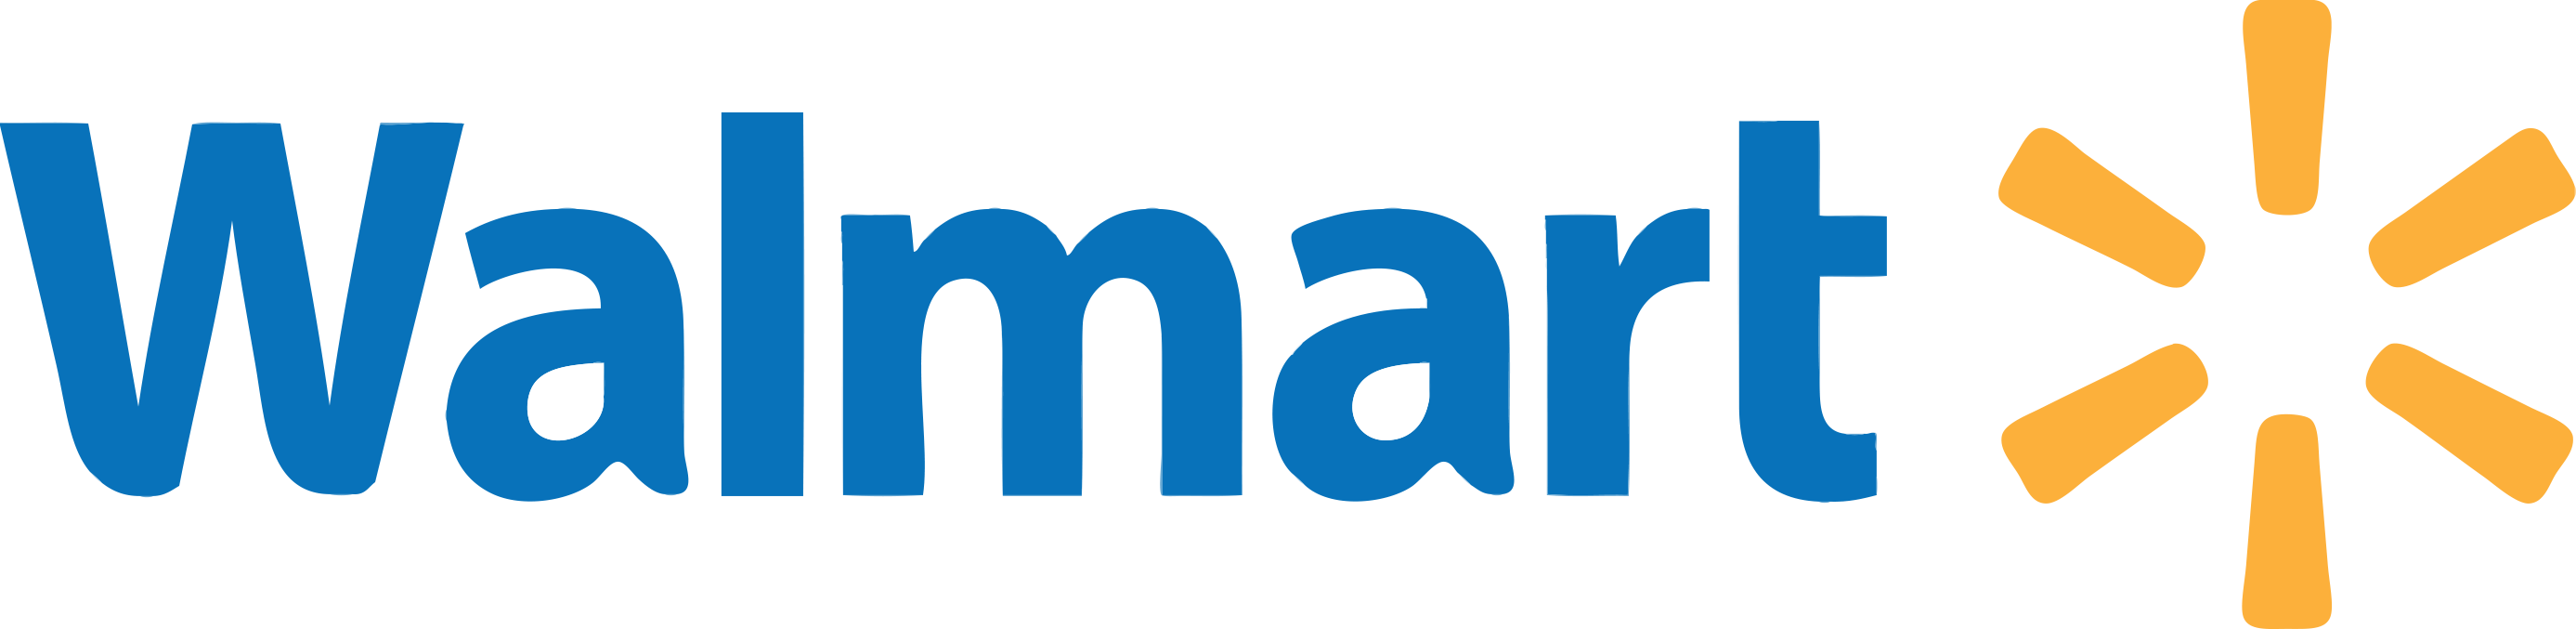 walmart_logo-plain.png Opens in new window